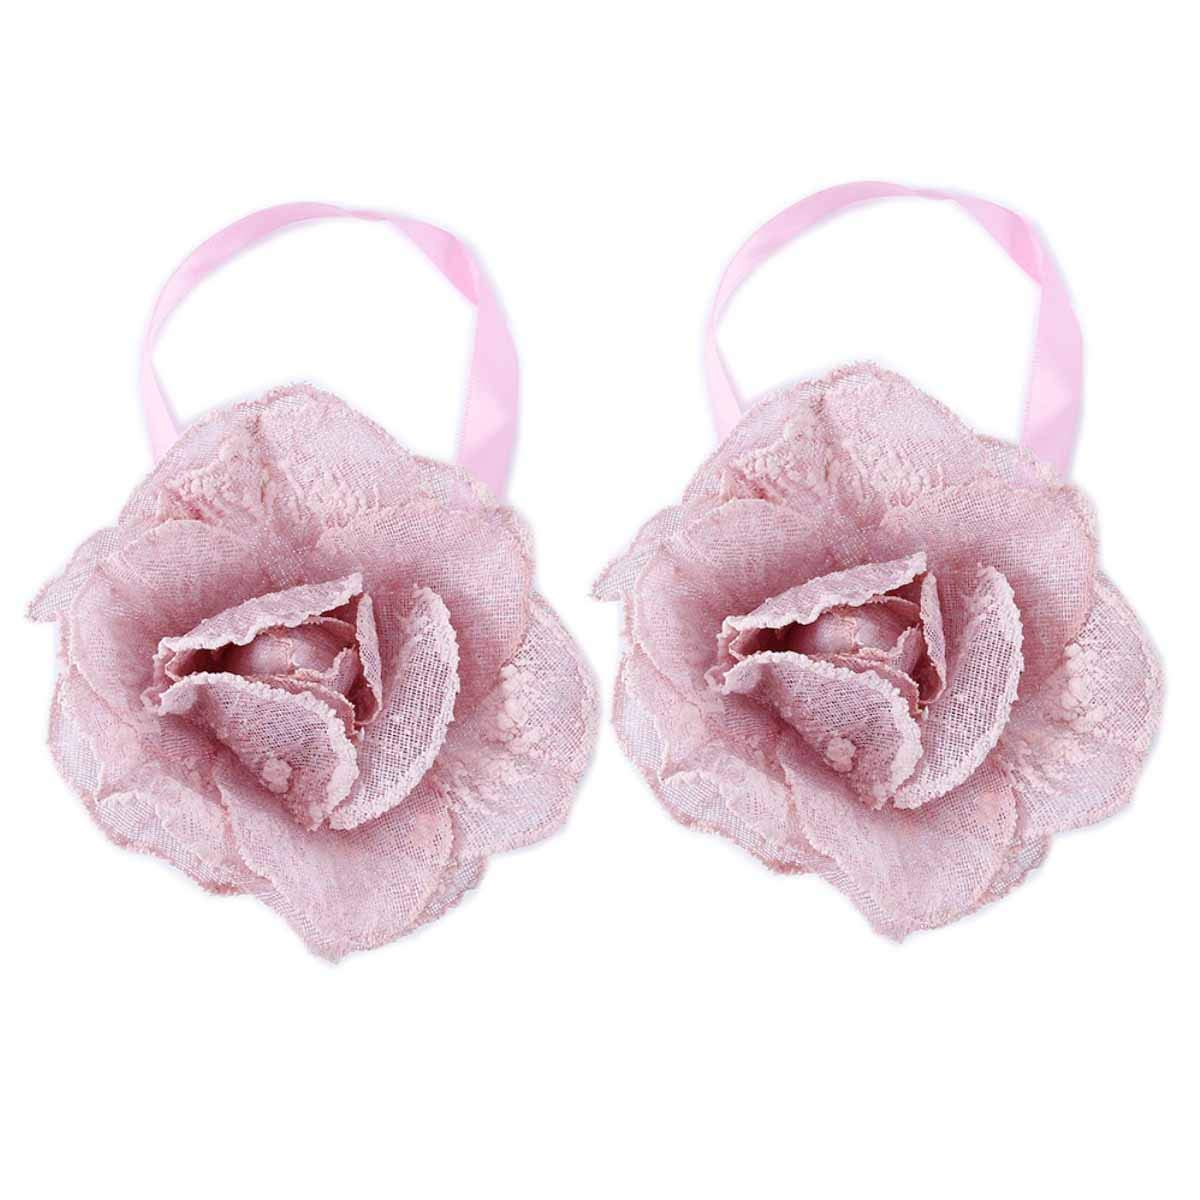 YING CHIC YYC 2Pcs Flower Magnetic Curtain Buckle Tieback Drapey Holder Girl's Room Decor (Pink)